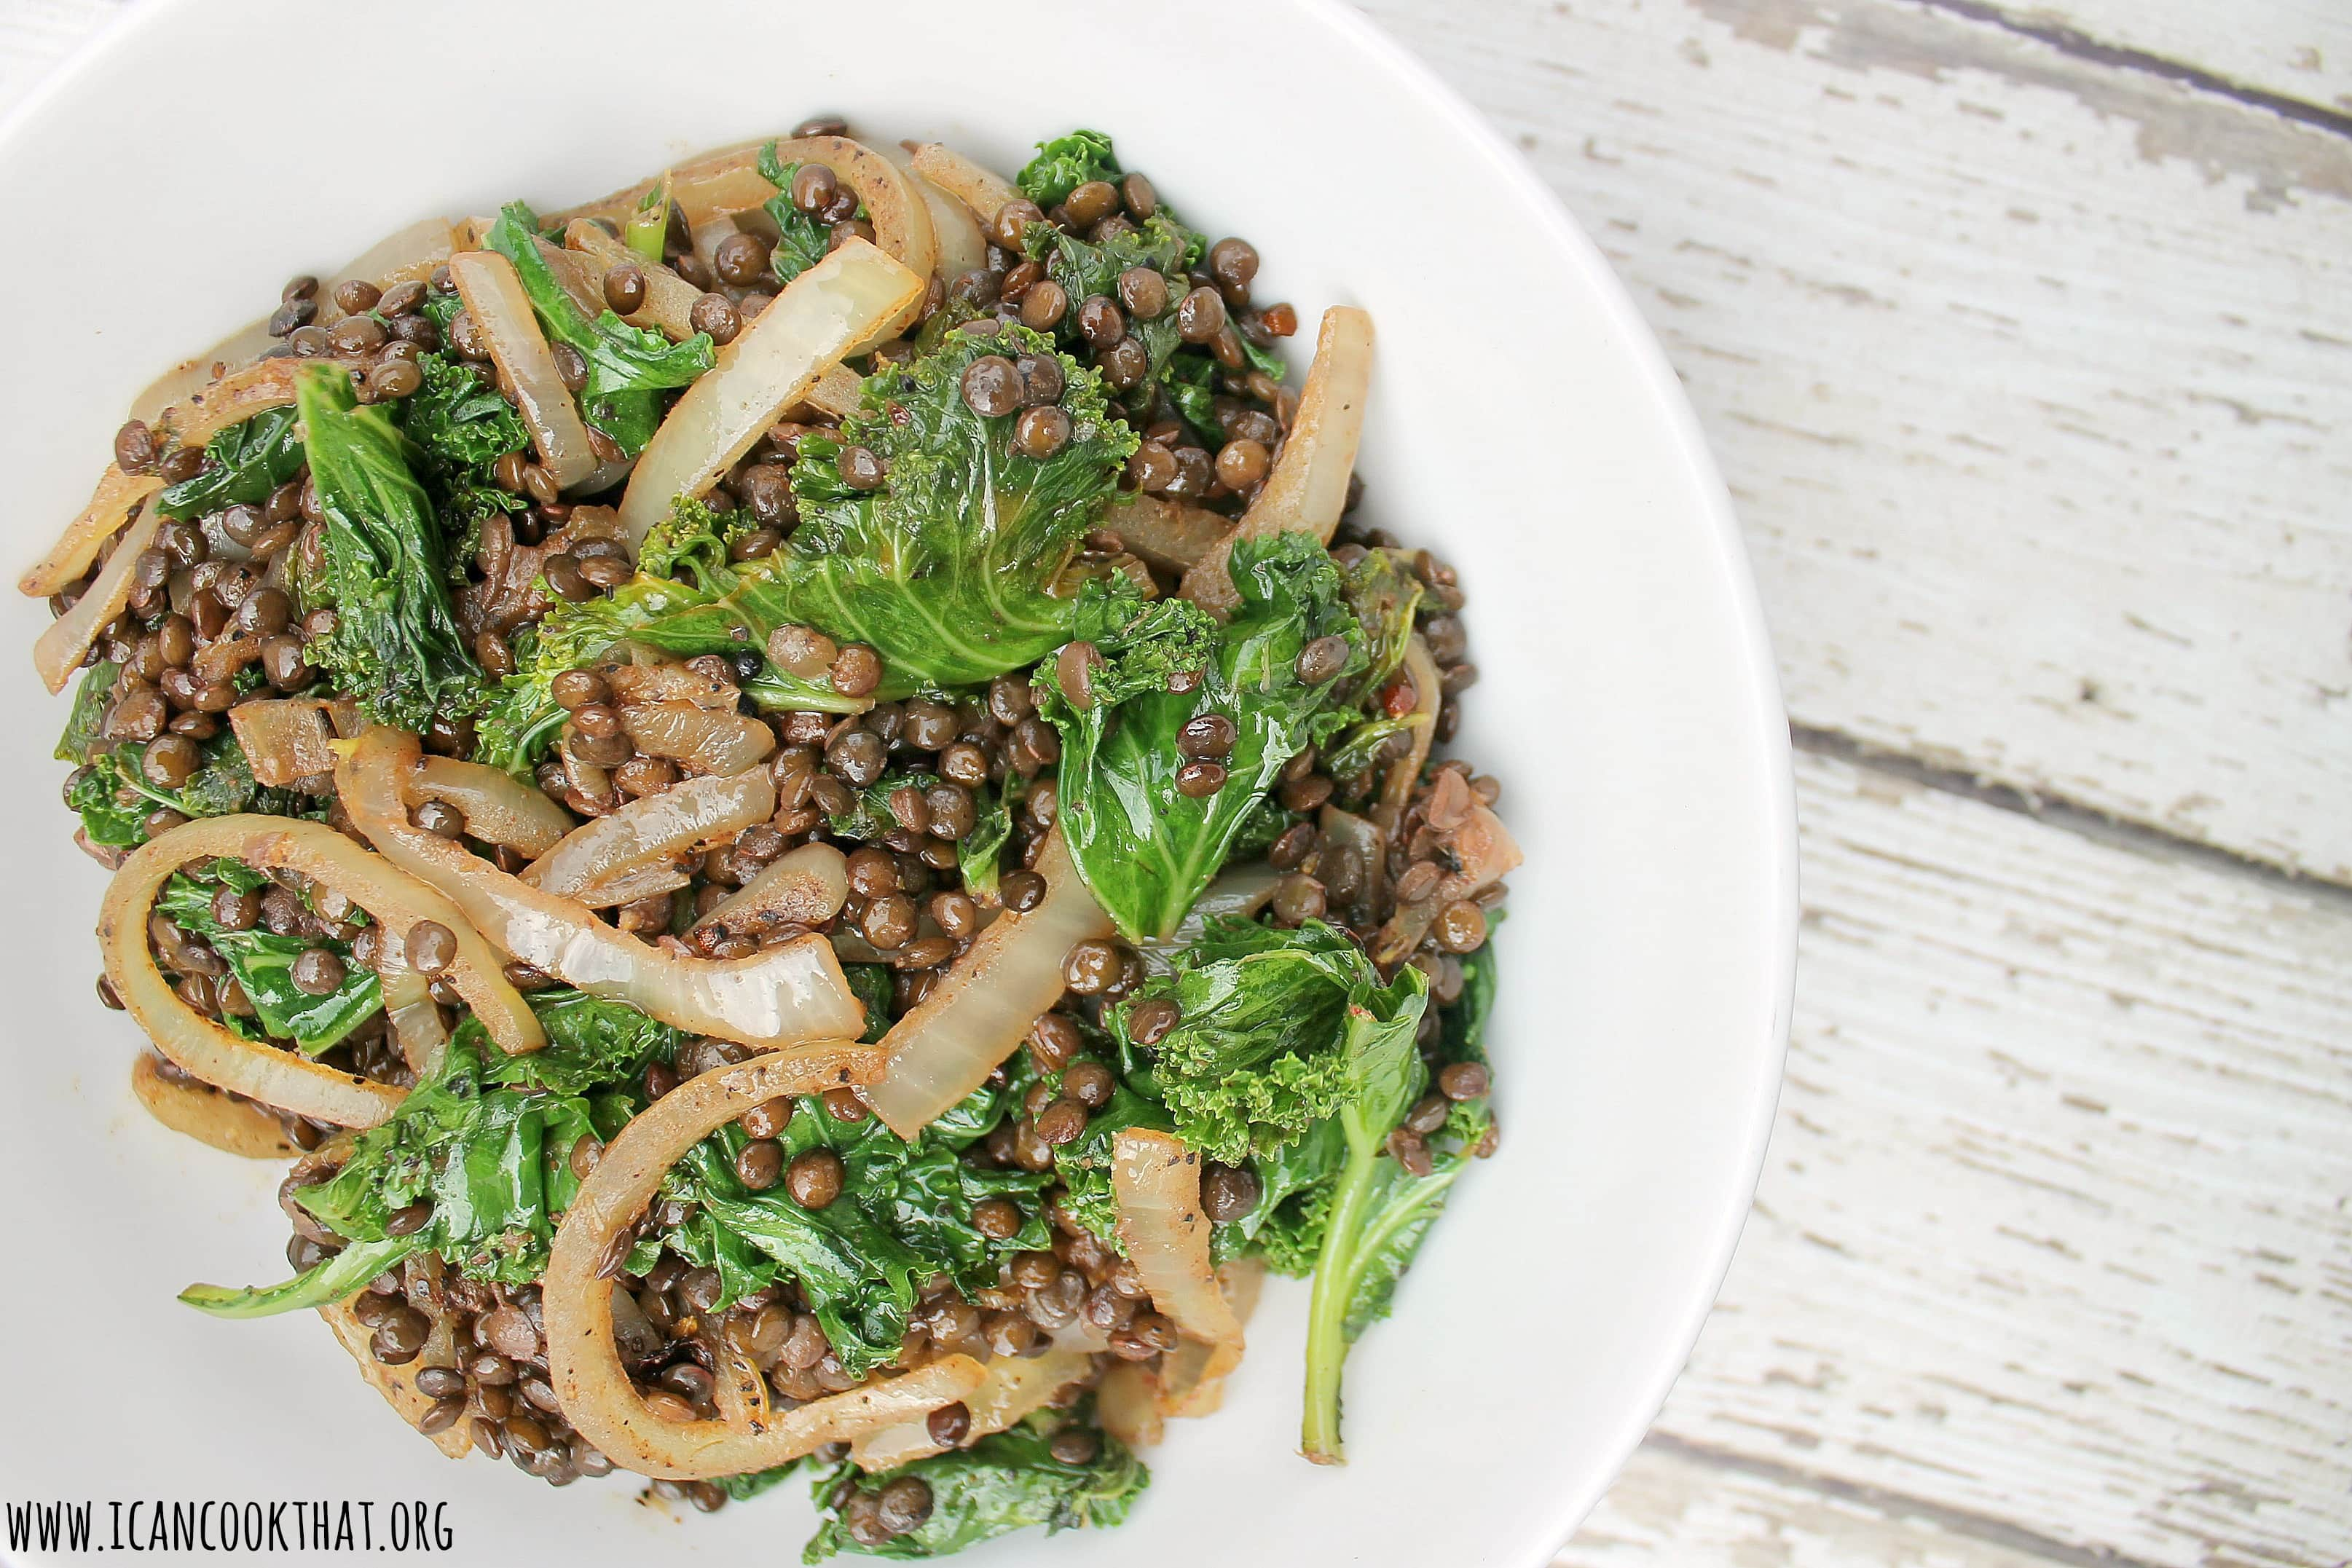 Moroccan Black Lentils with Kale and Onions